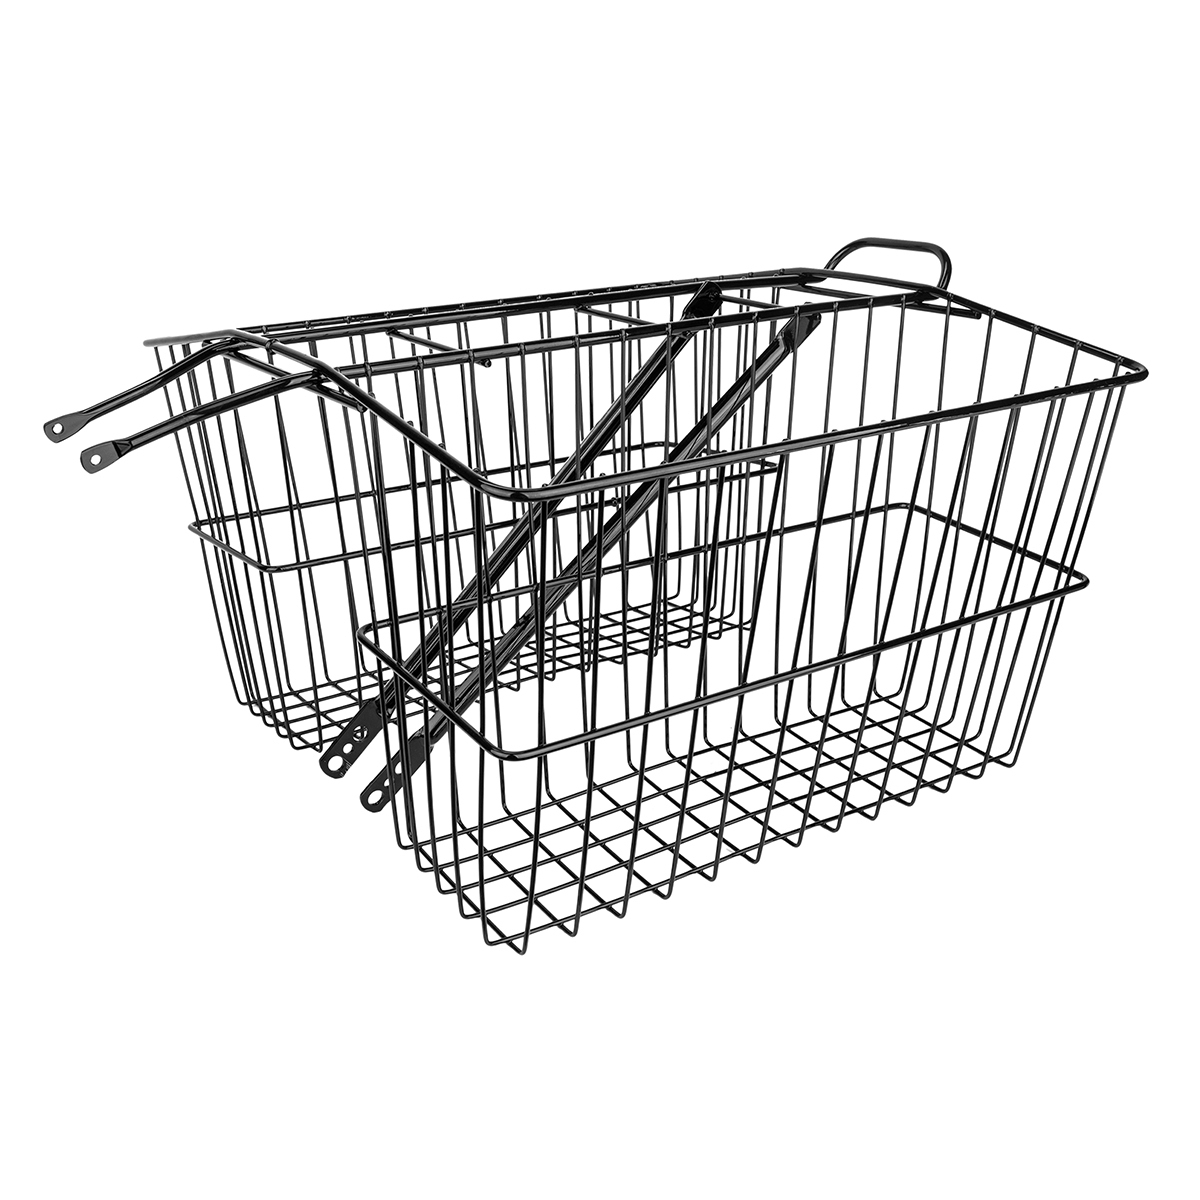 Wald Products #520 Rear Basket Basket Wald 520 Twin Rr Med 13x6x11